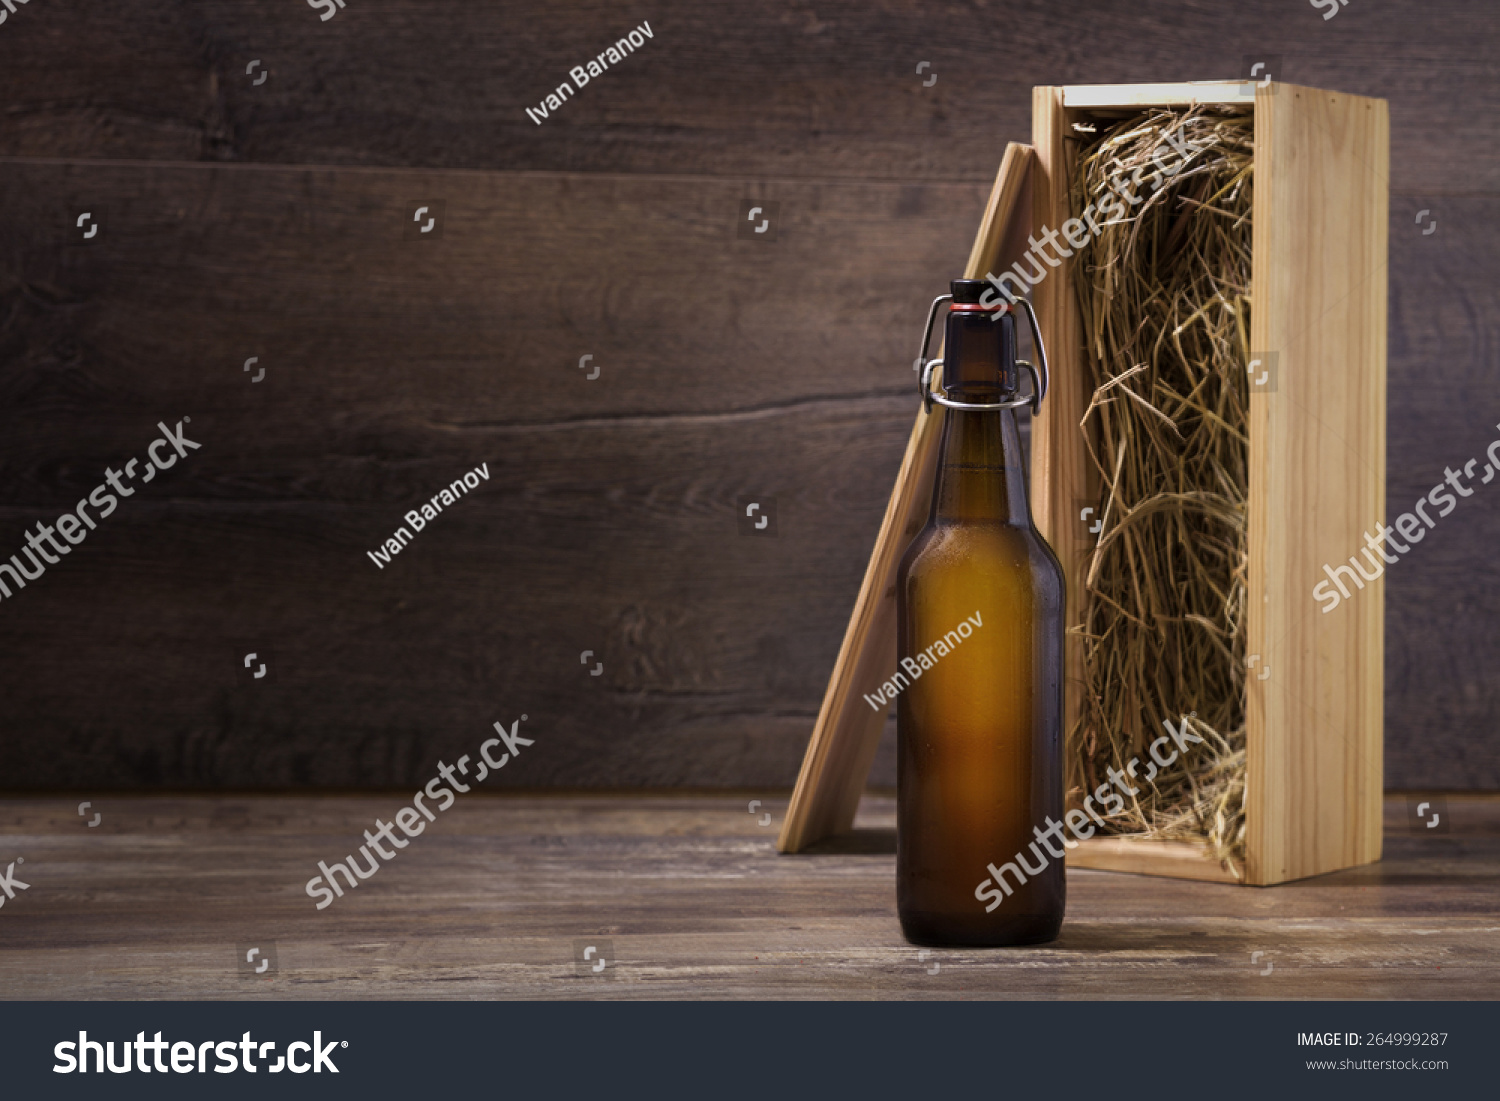 Craft beer gift box - Craft Beer Bottle Mock Up Beer Bottle Without Label With A Wooden Gift Box